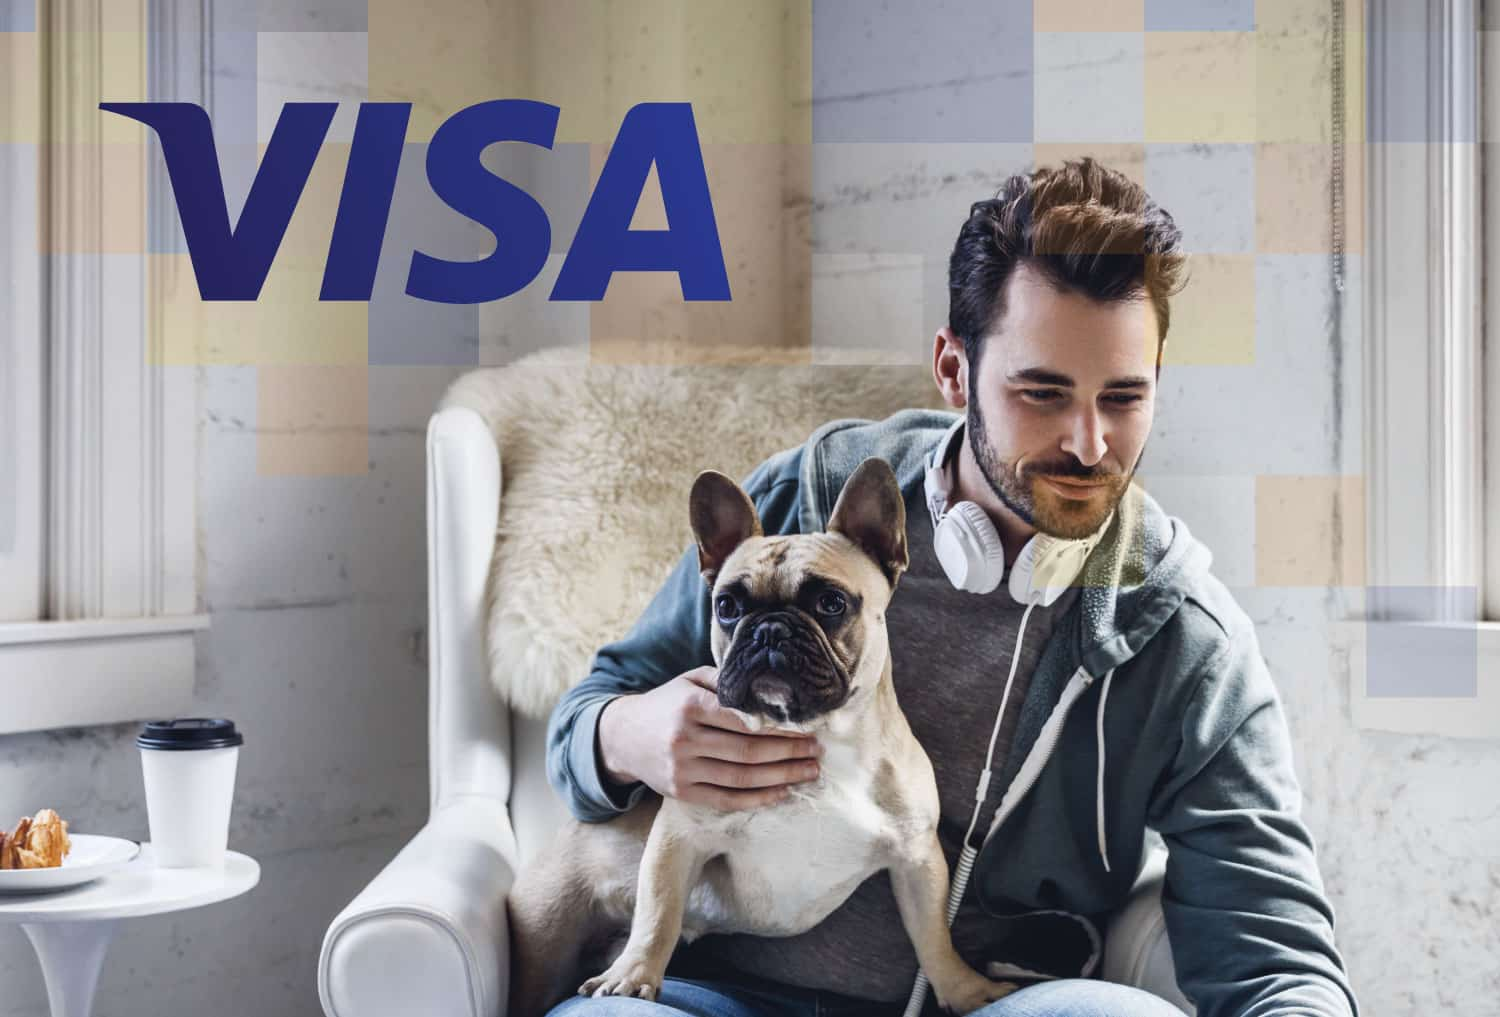 Visa | The Future of Payment Security in Canada